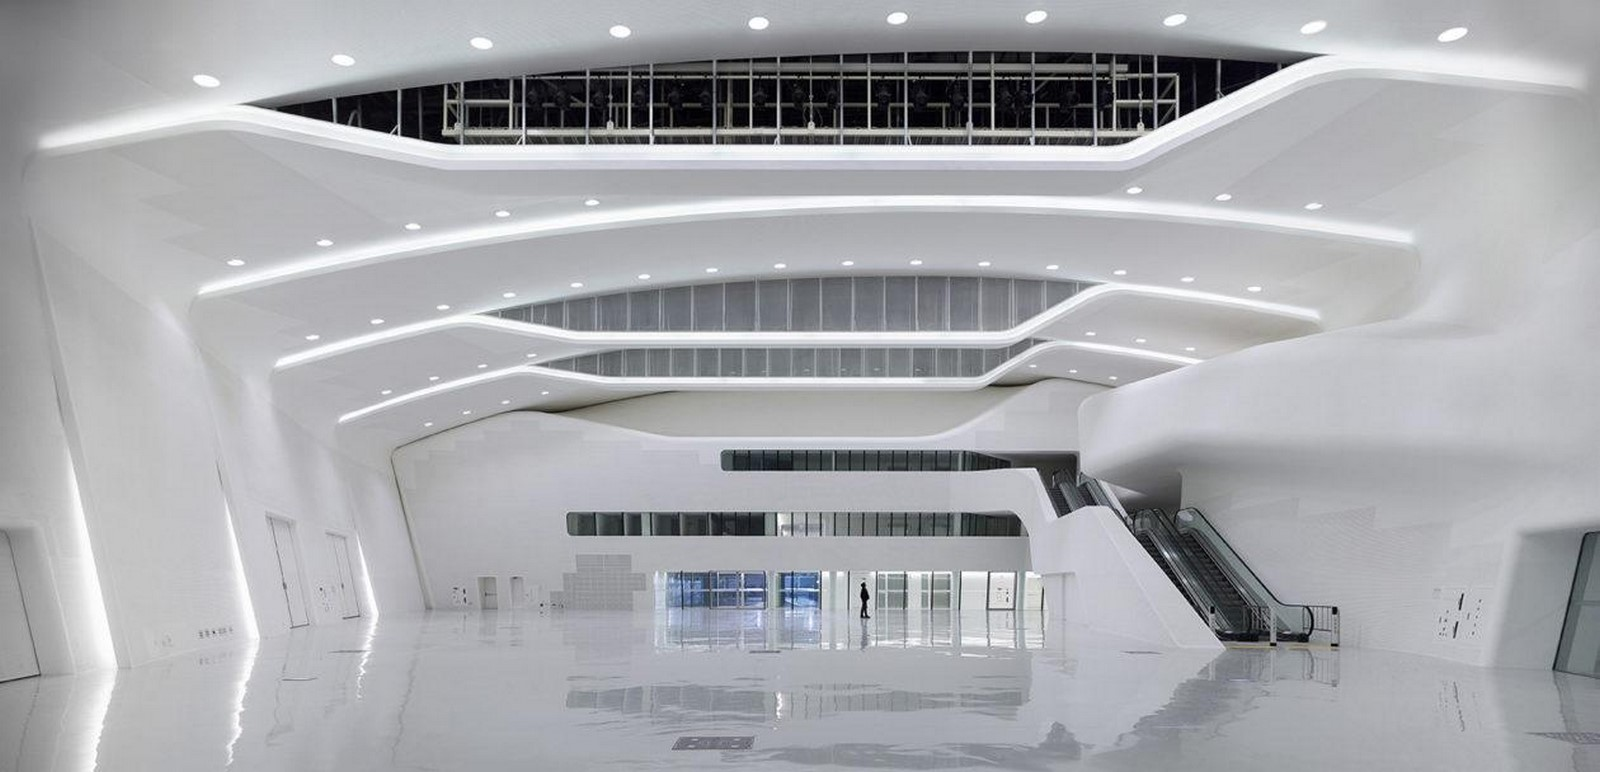 10 Reasons why architects must visit South Korea - Sheet21